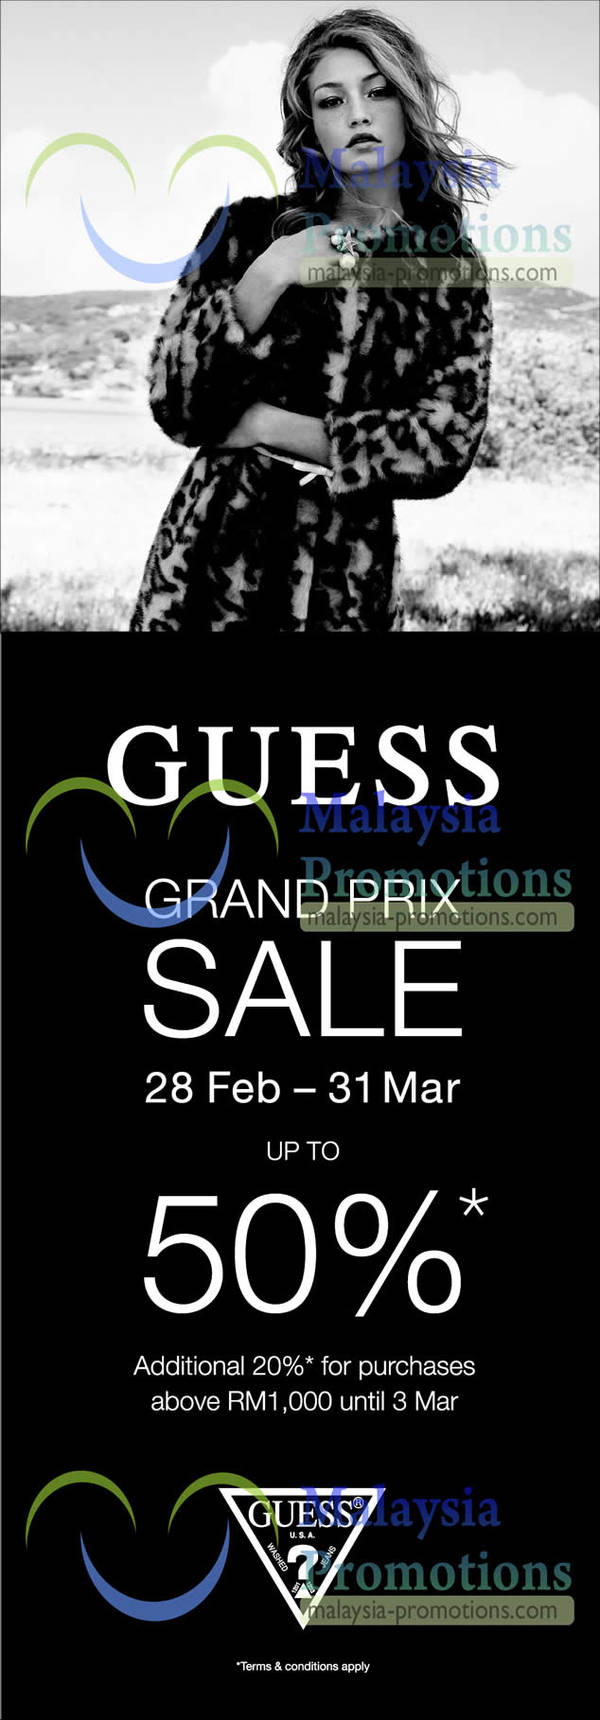 Featured image for Guess Grand Prix Sale Up To 50% Off 28 Feb – 31 Mar 2013